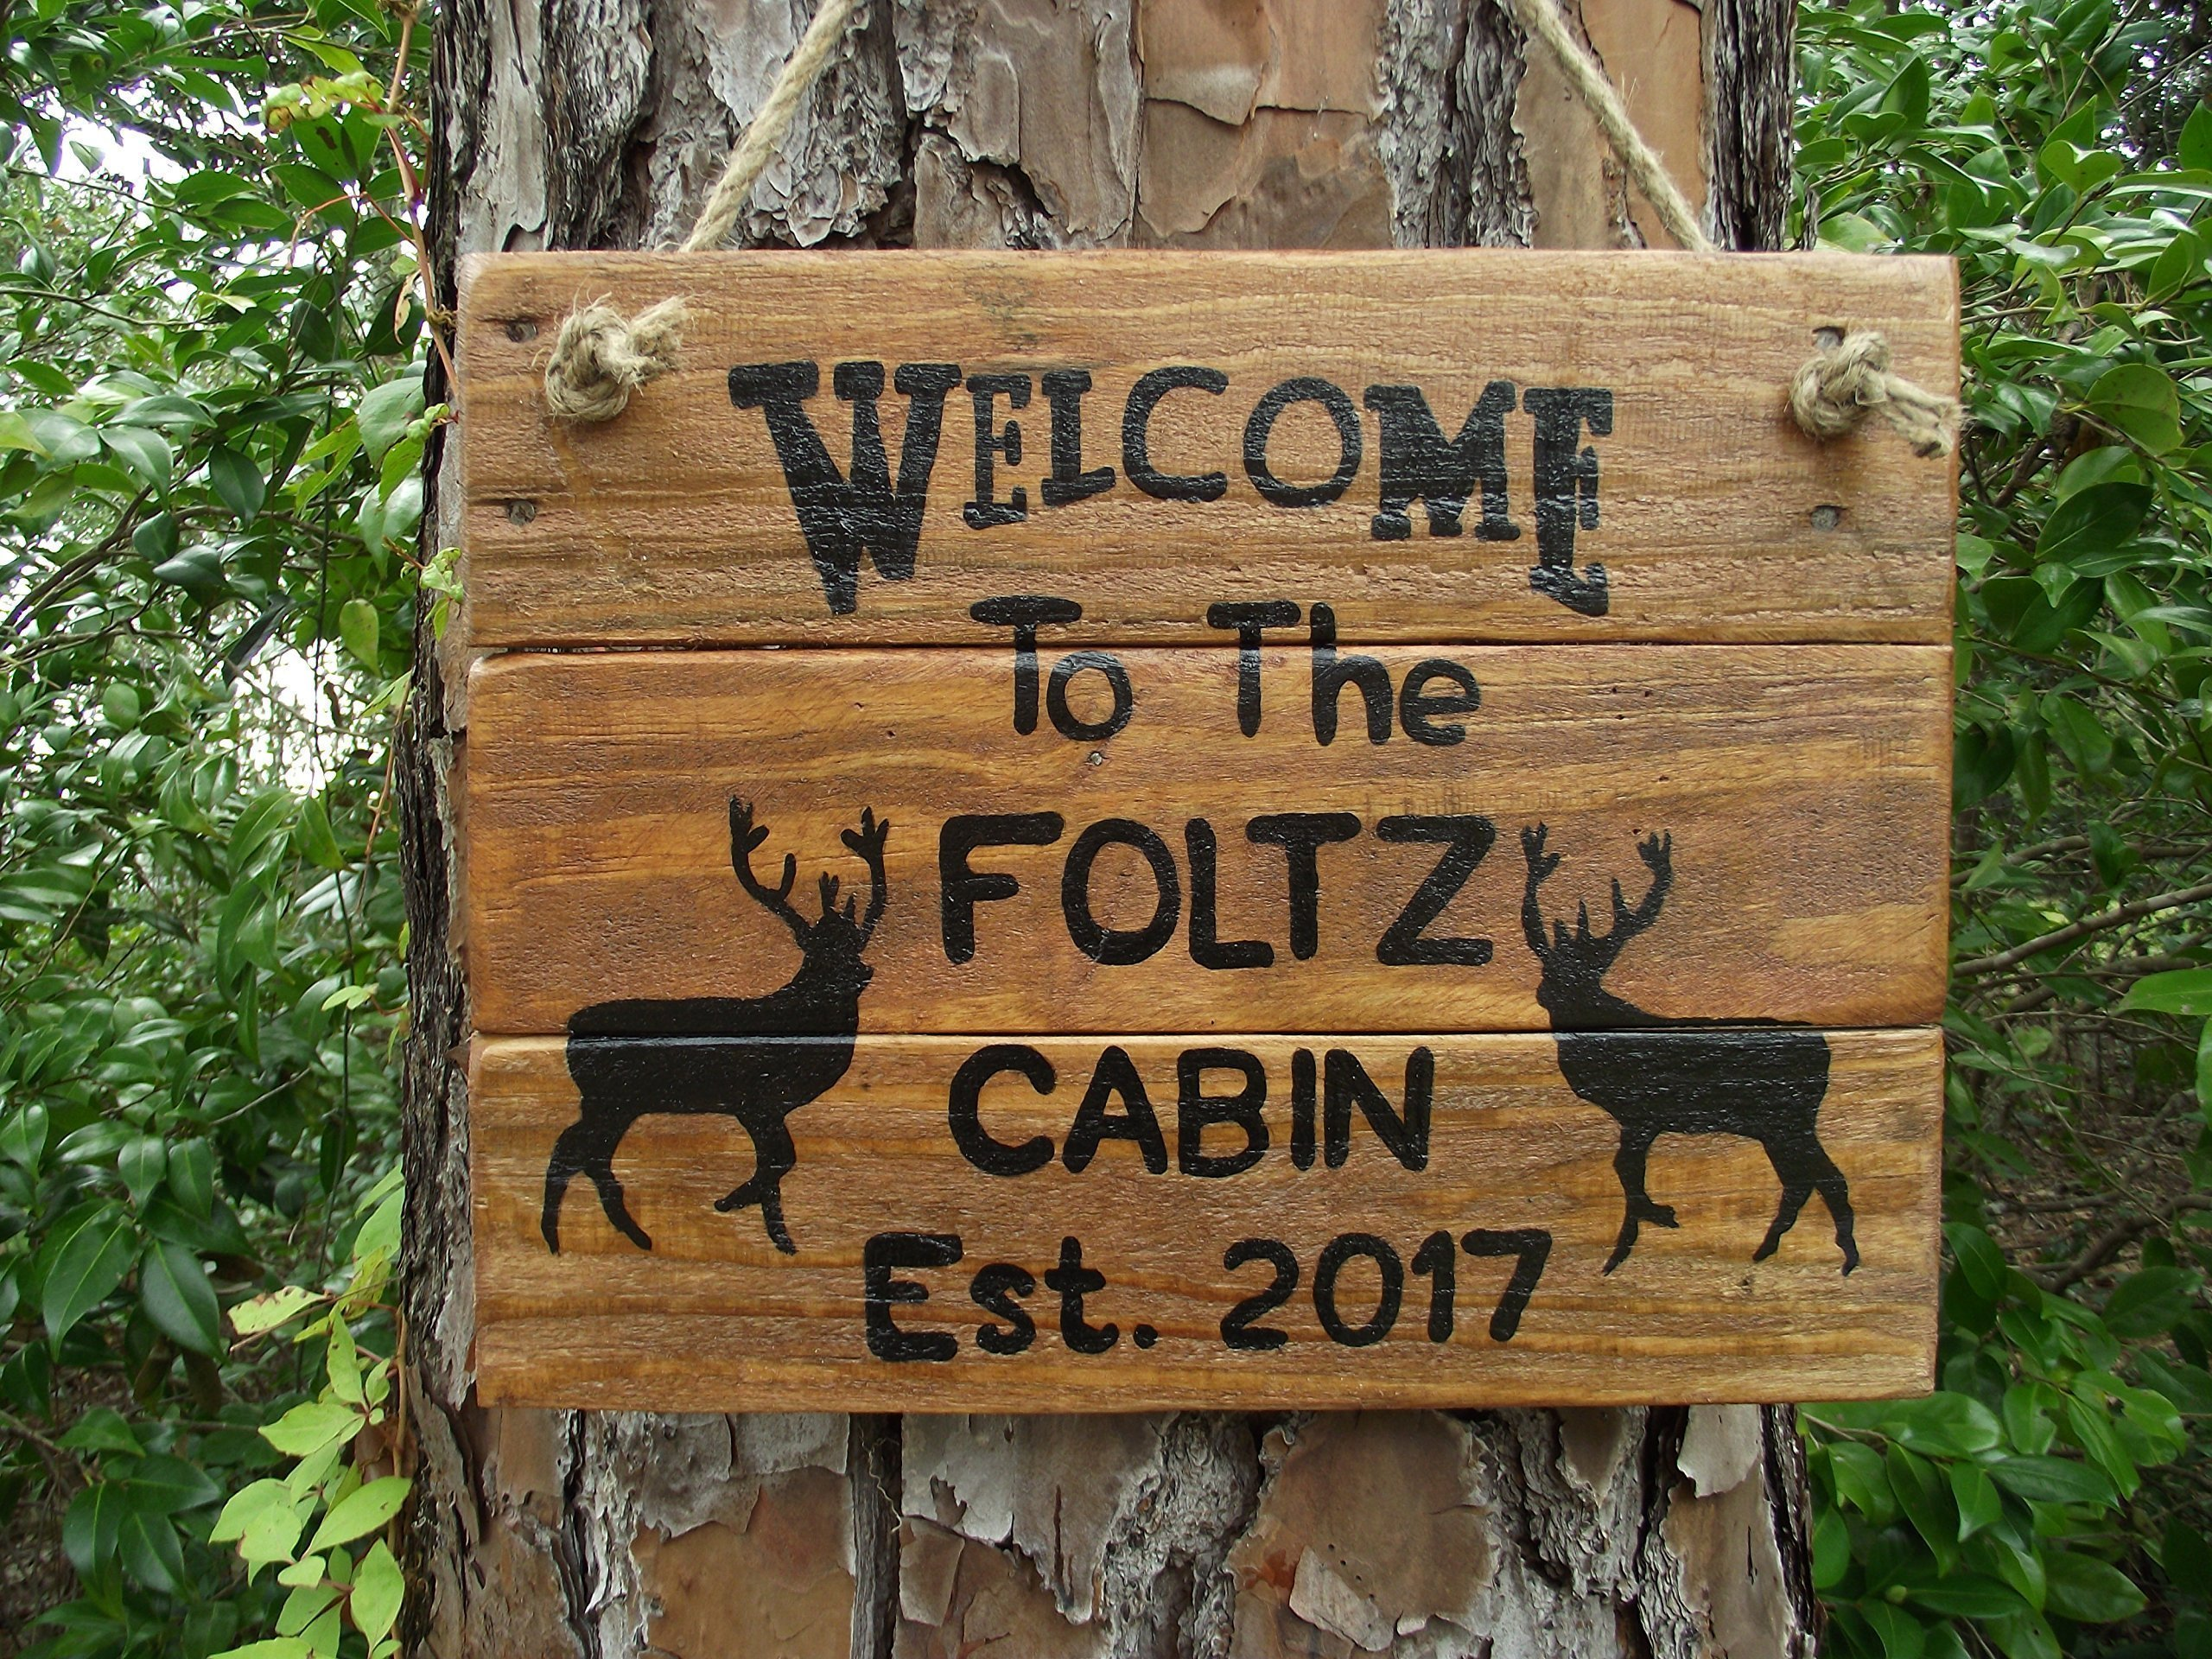 Personalized cabin sign | Personalized deer cabin sign| Rustic cabin sign| custom cabin decor| deer camp sign|hand painted deer cabin sign